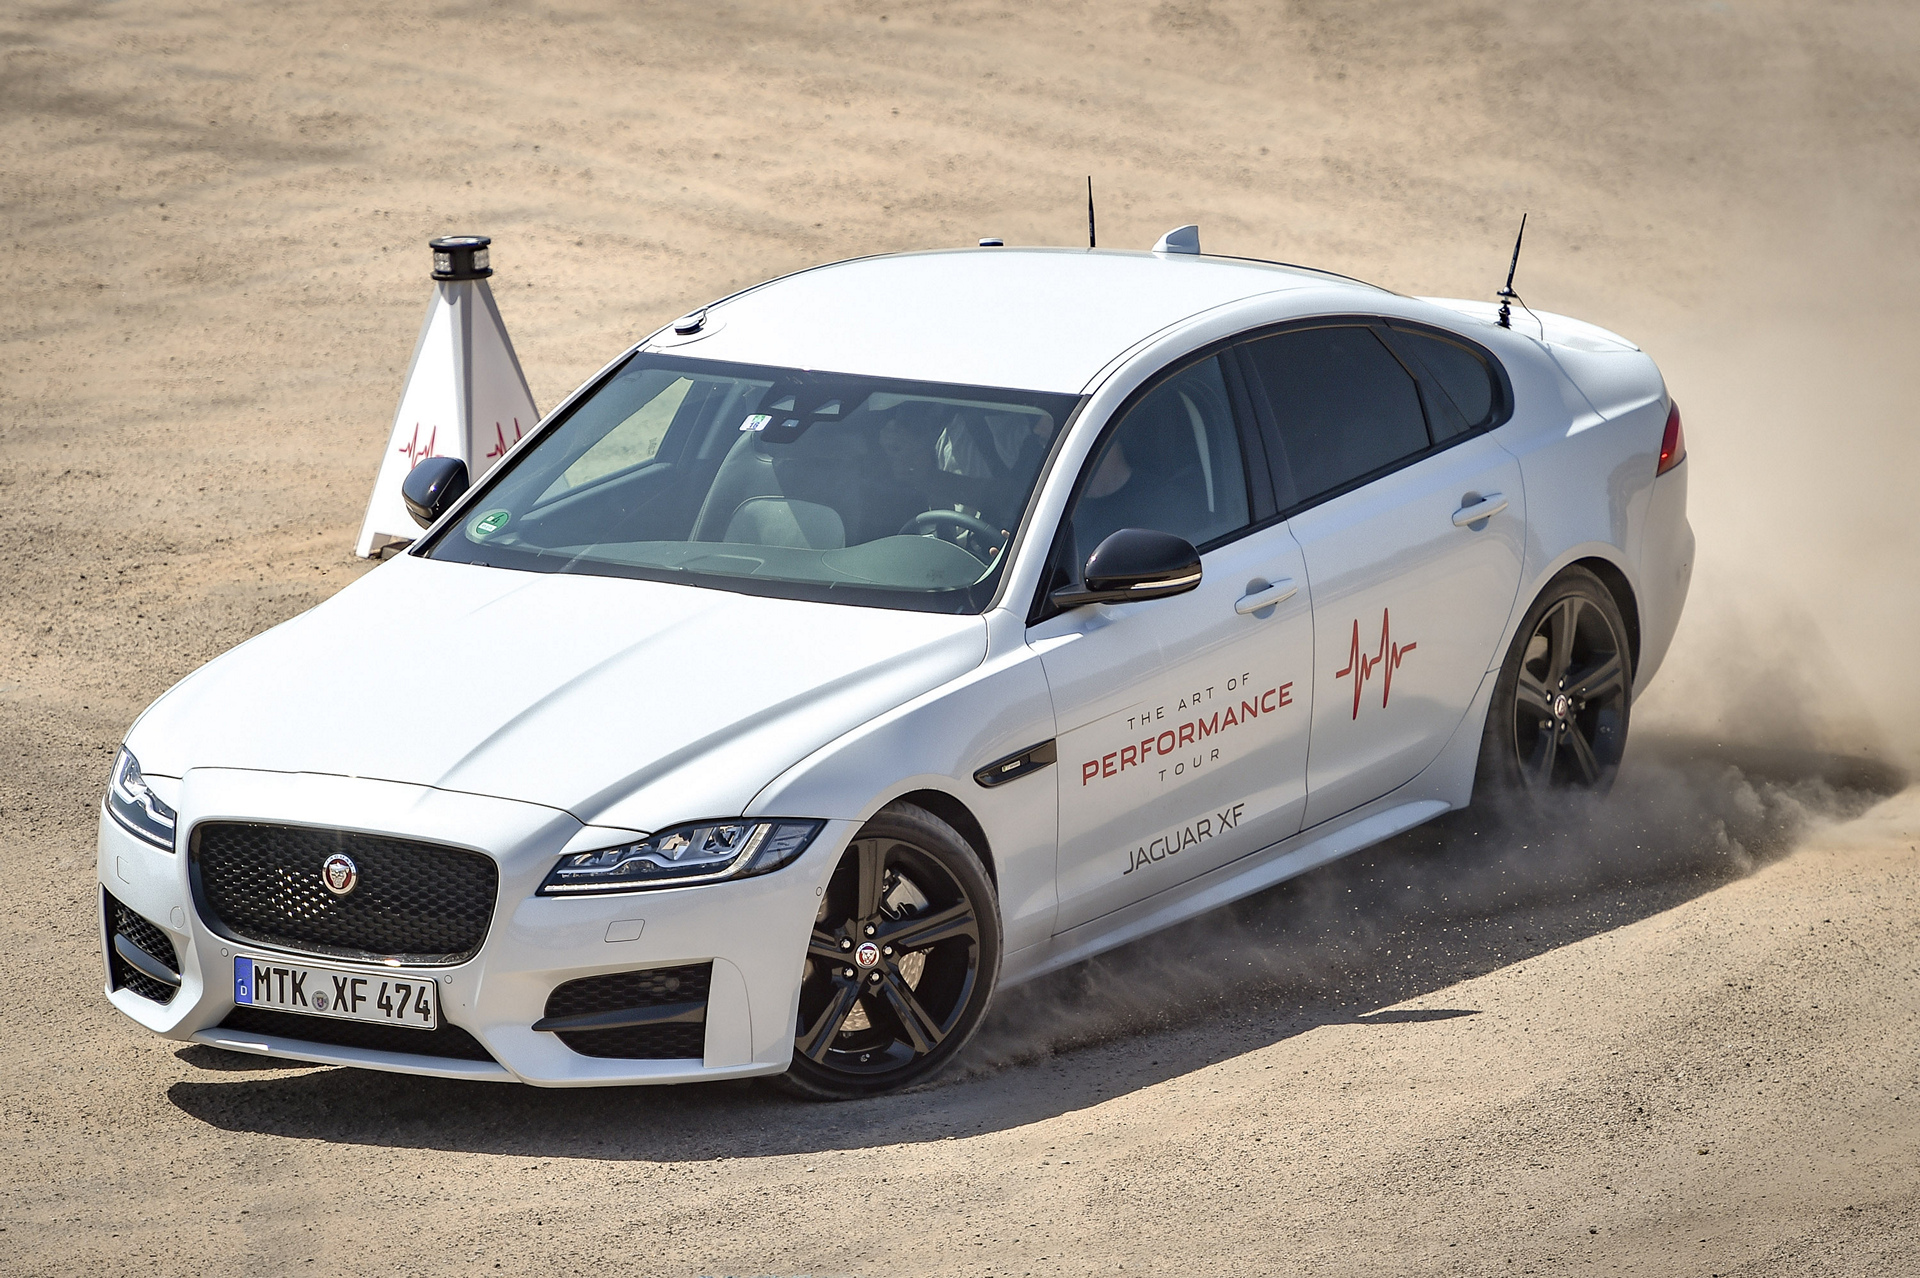 Nicholas Hoult Takes on Unique Driving Challenge in New Jaguar XF © Tata Group